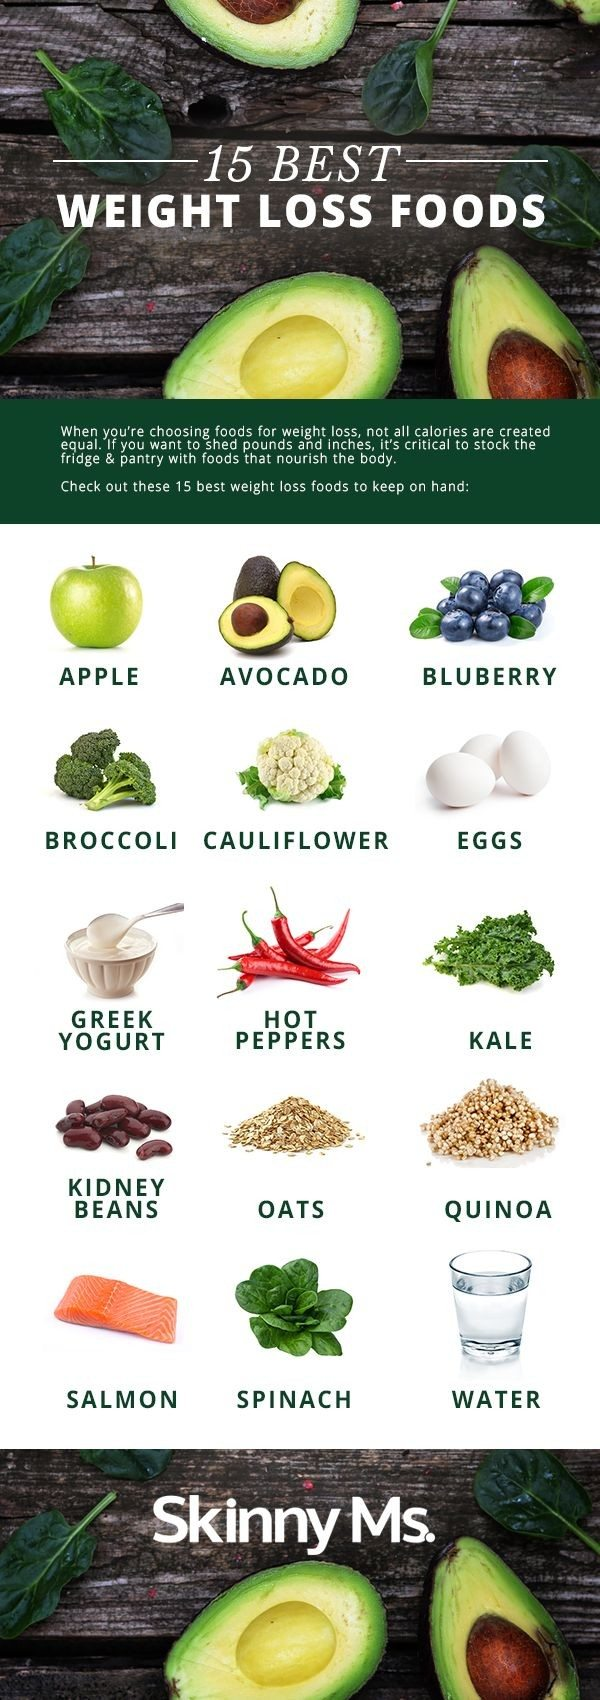 15 Best Weight Loss Foods